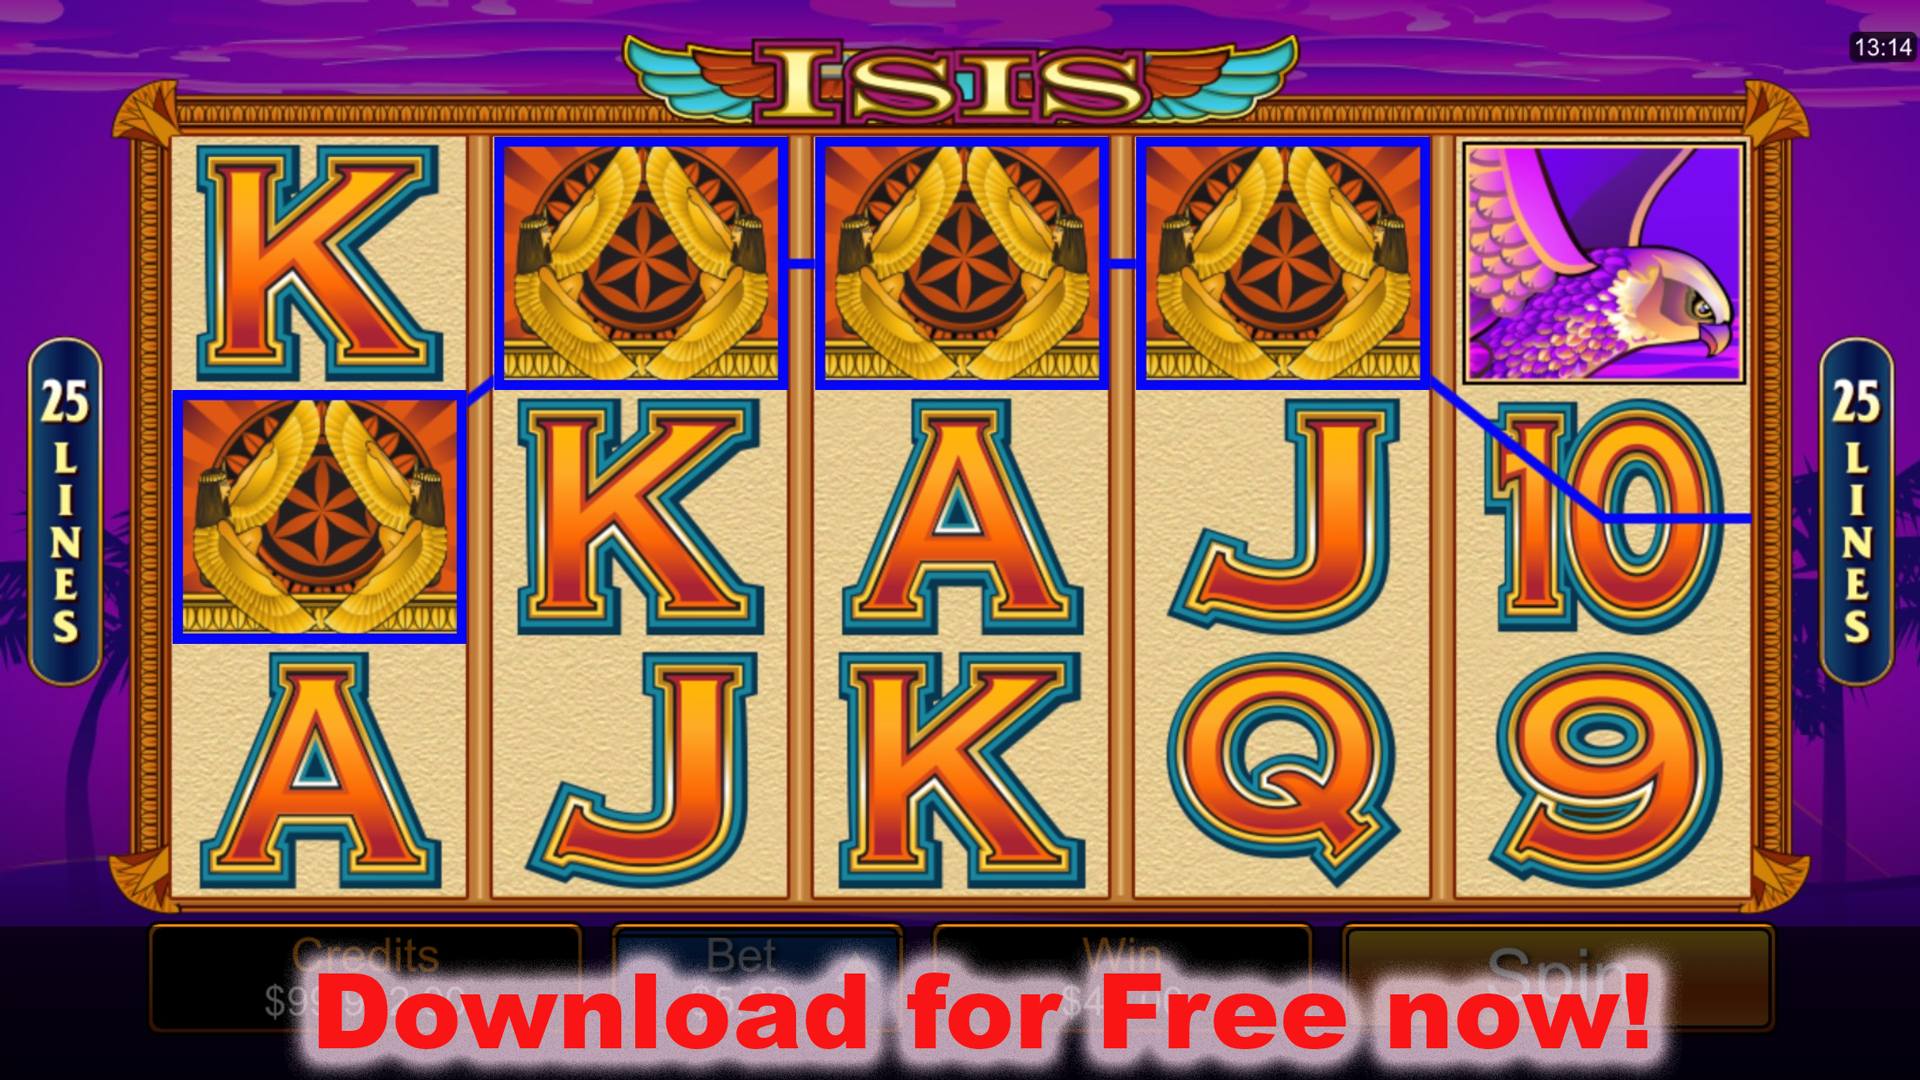 Isis Slot - Read our Review of this Microgaming Casino Game